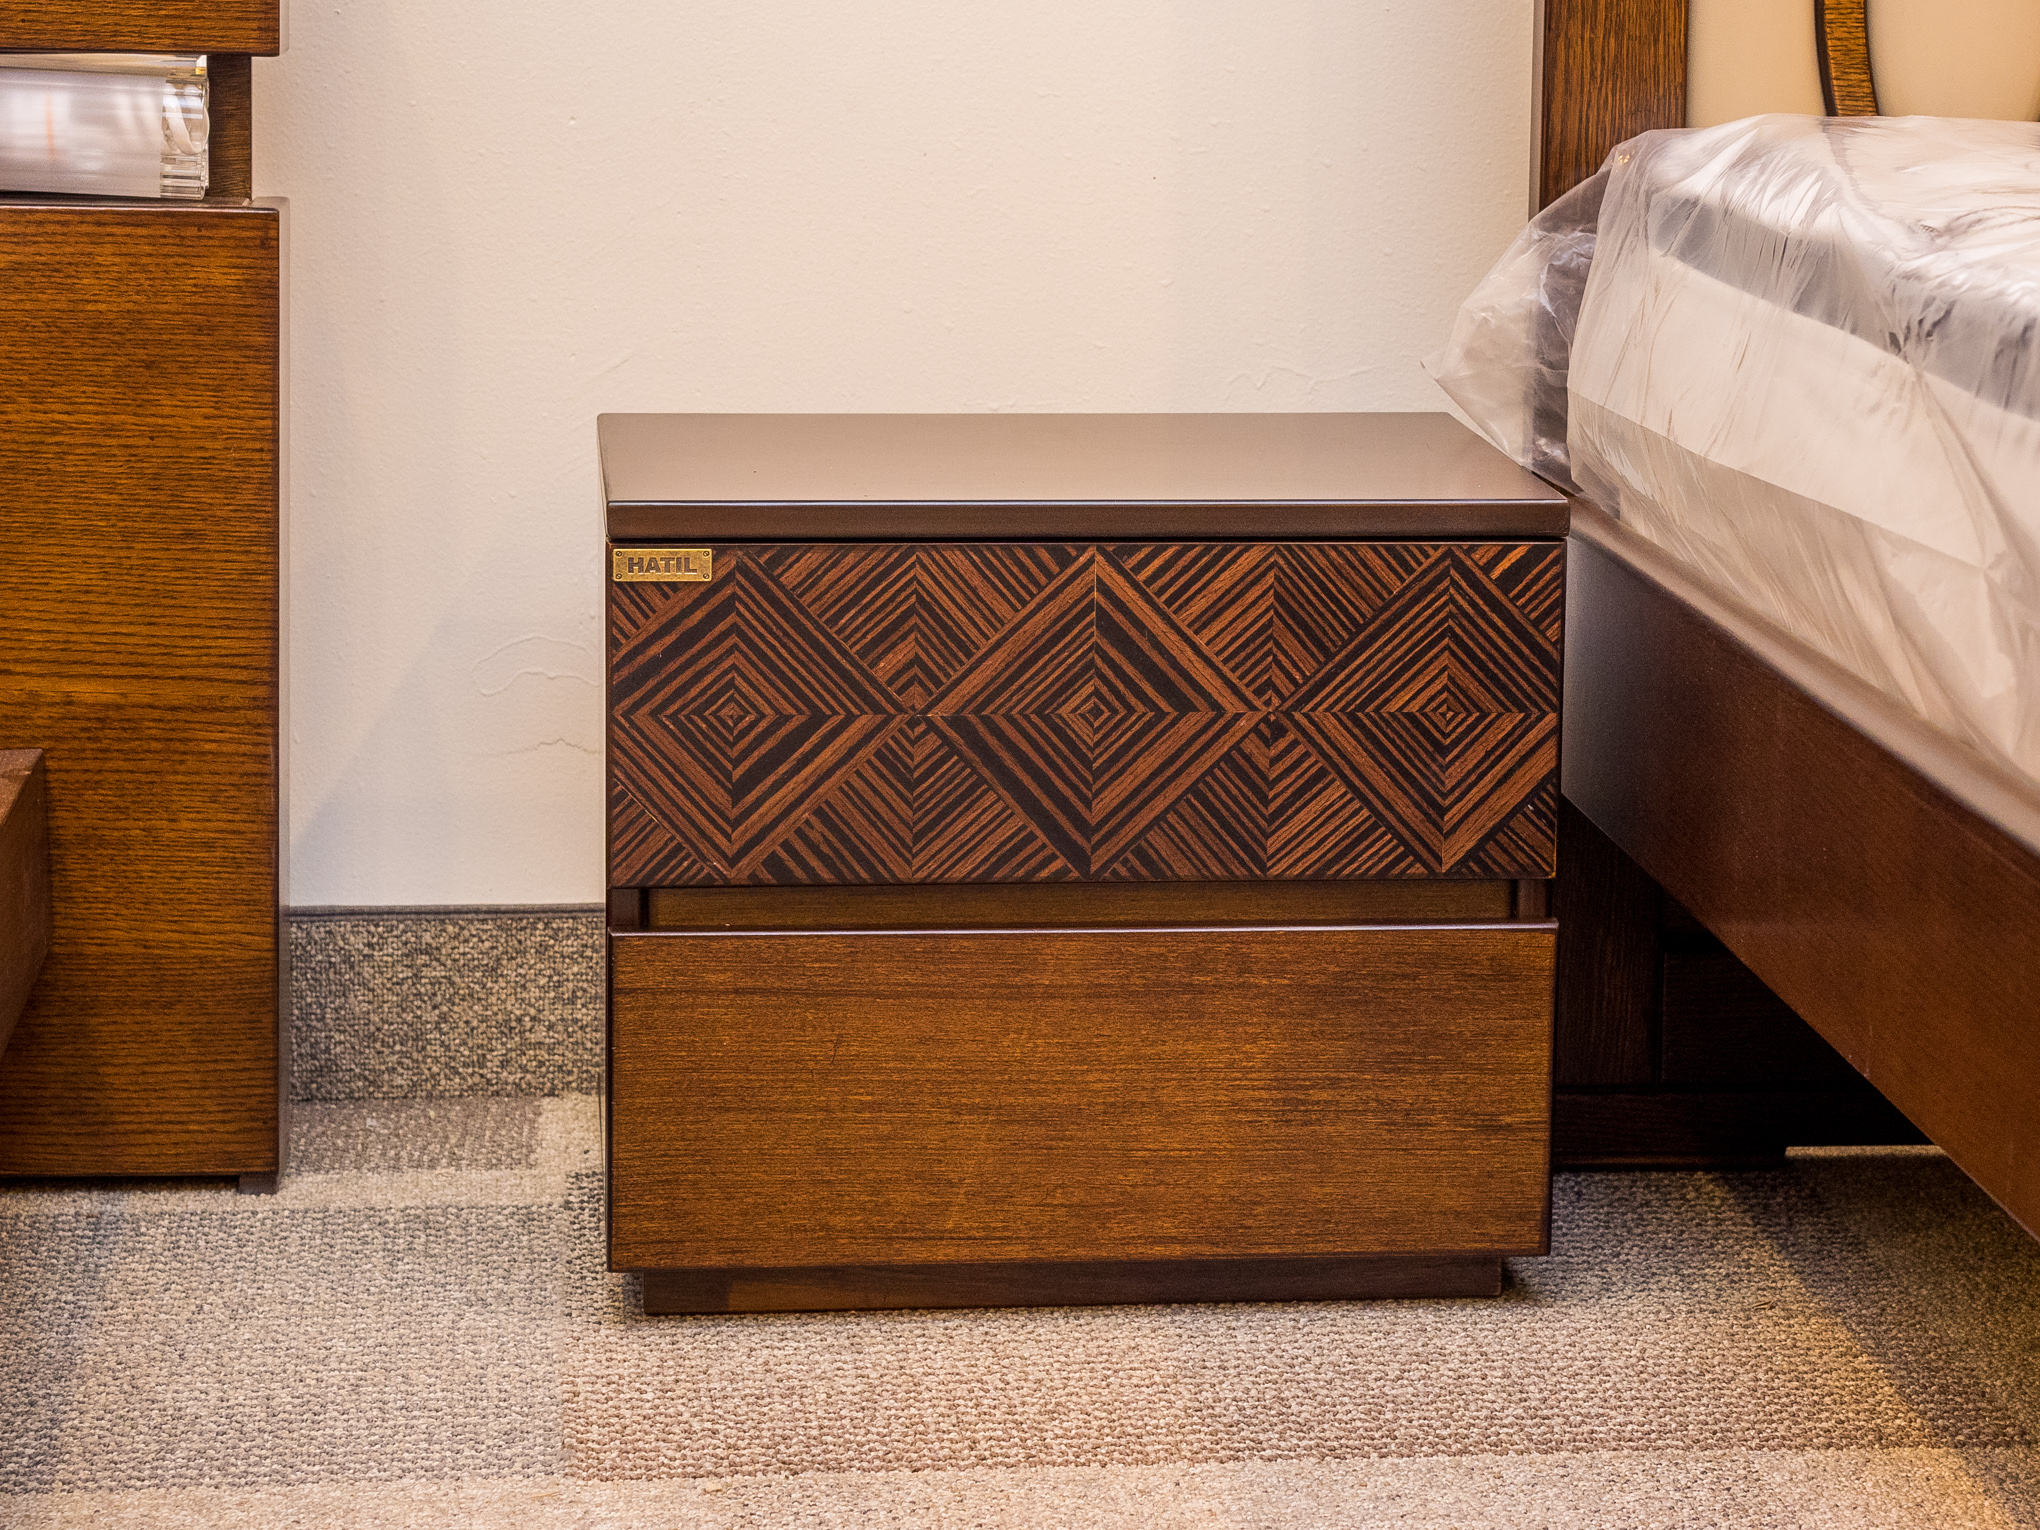 Model: 123-2-1-77. Side table with patterned drawer.